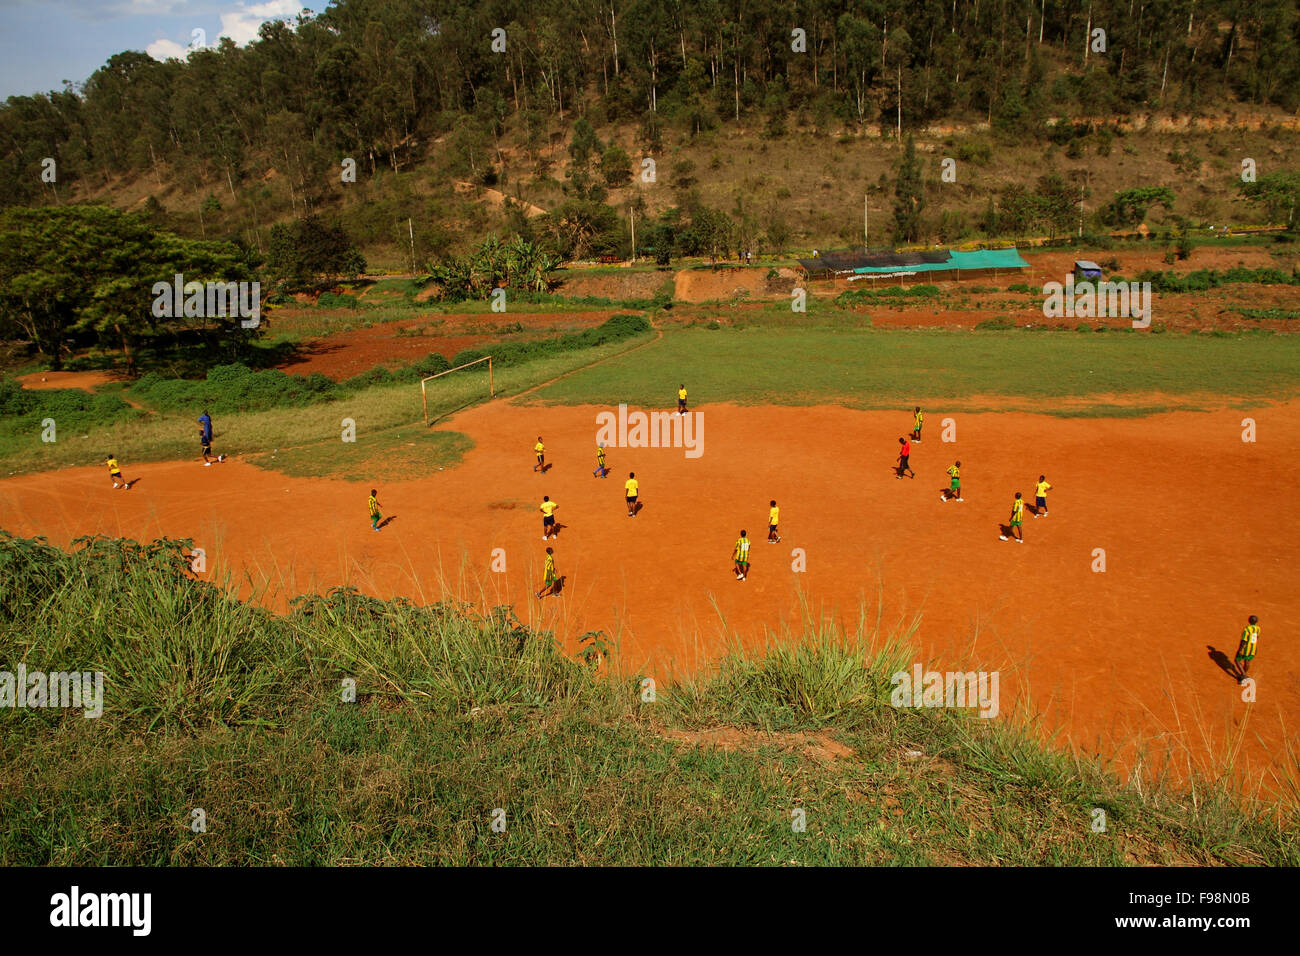 A group of African children, in Rwanda, Kigali, play soccer on a dirt field - Stock Image